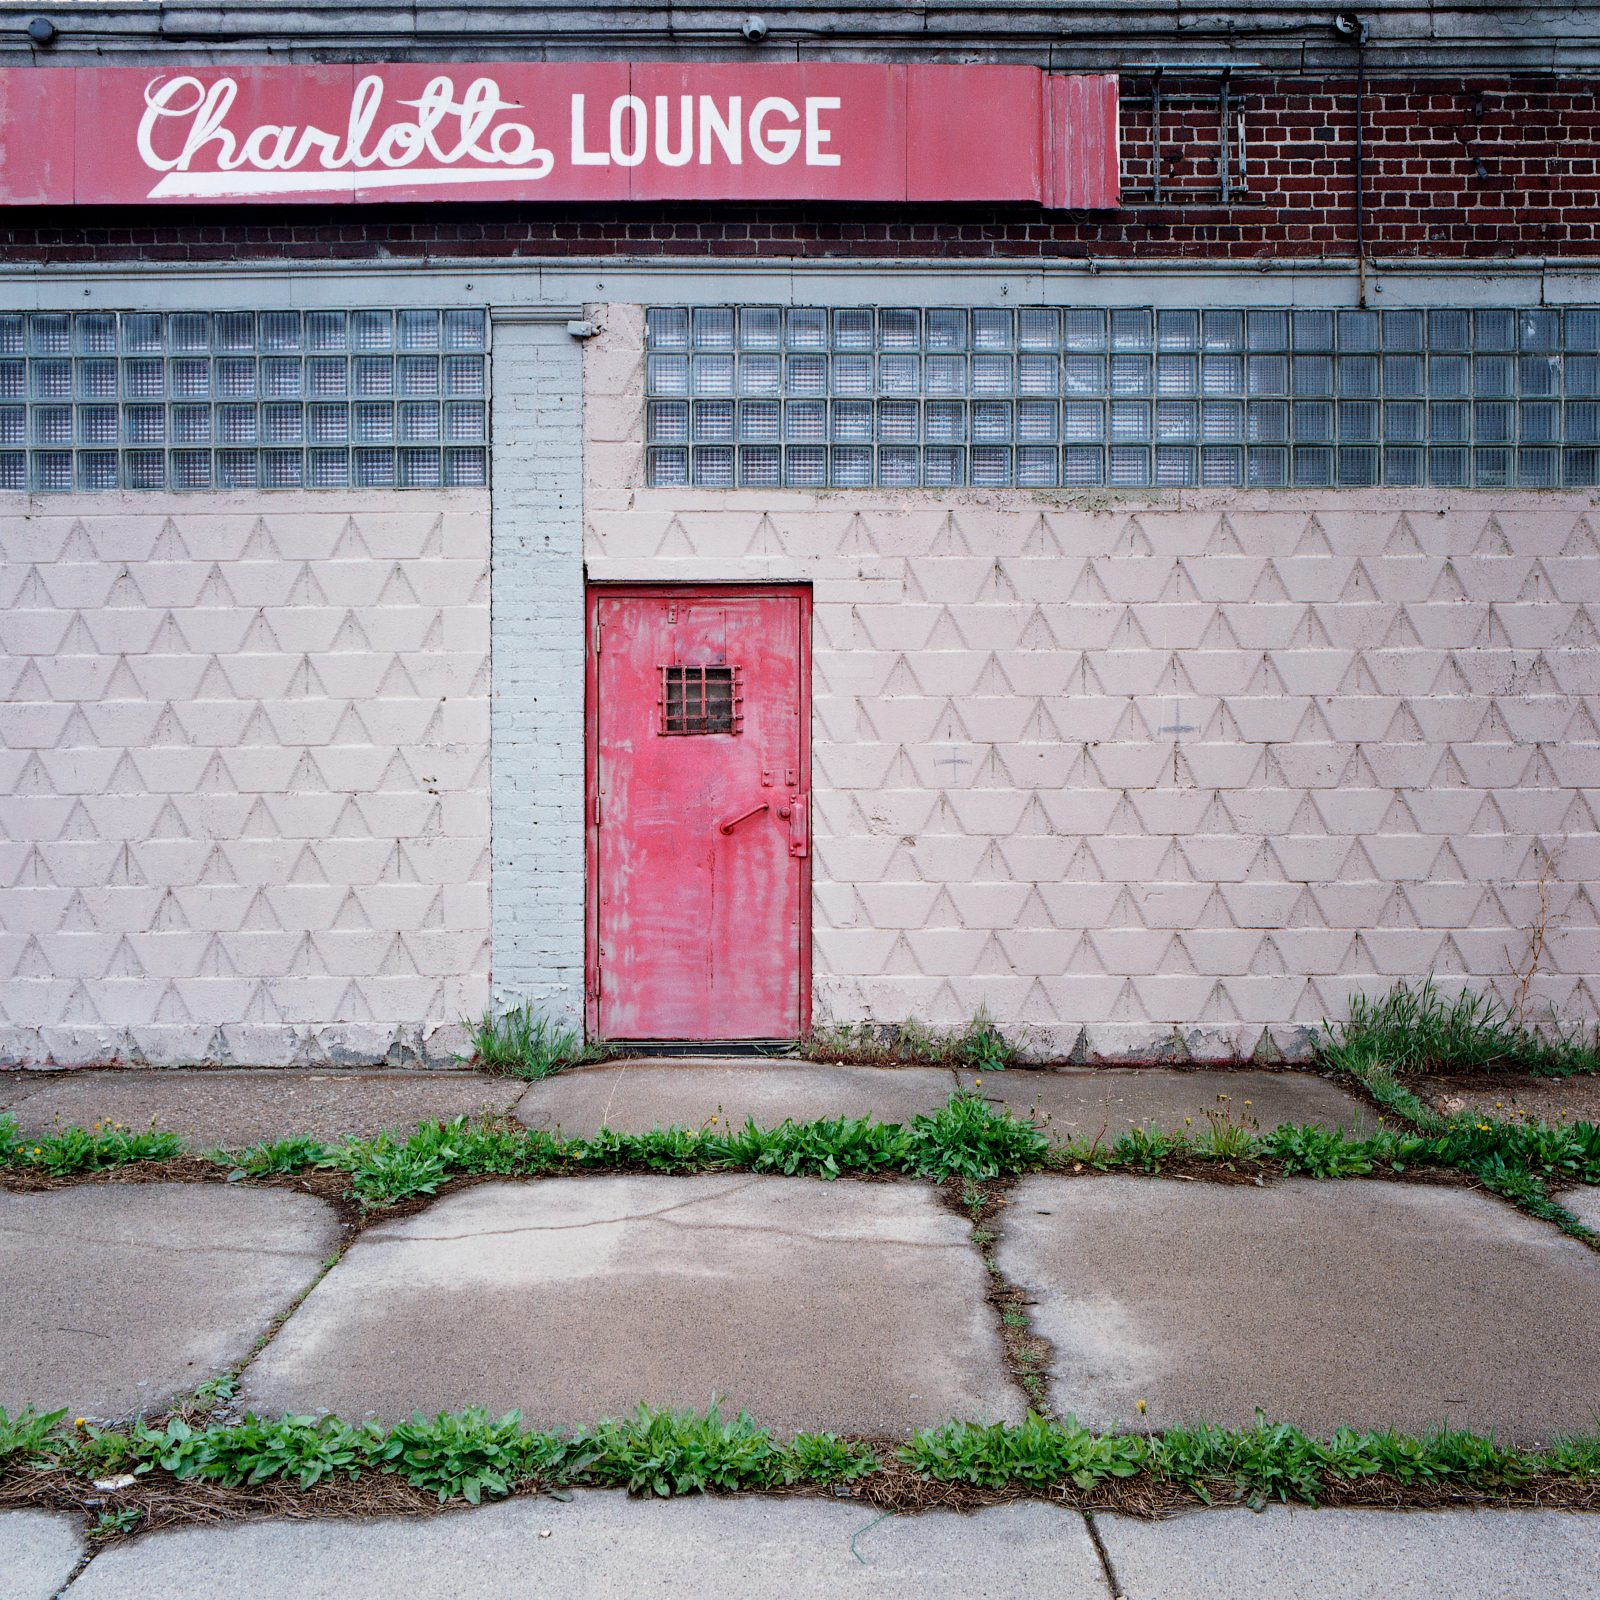 Charlotte Lounge door and sign